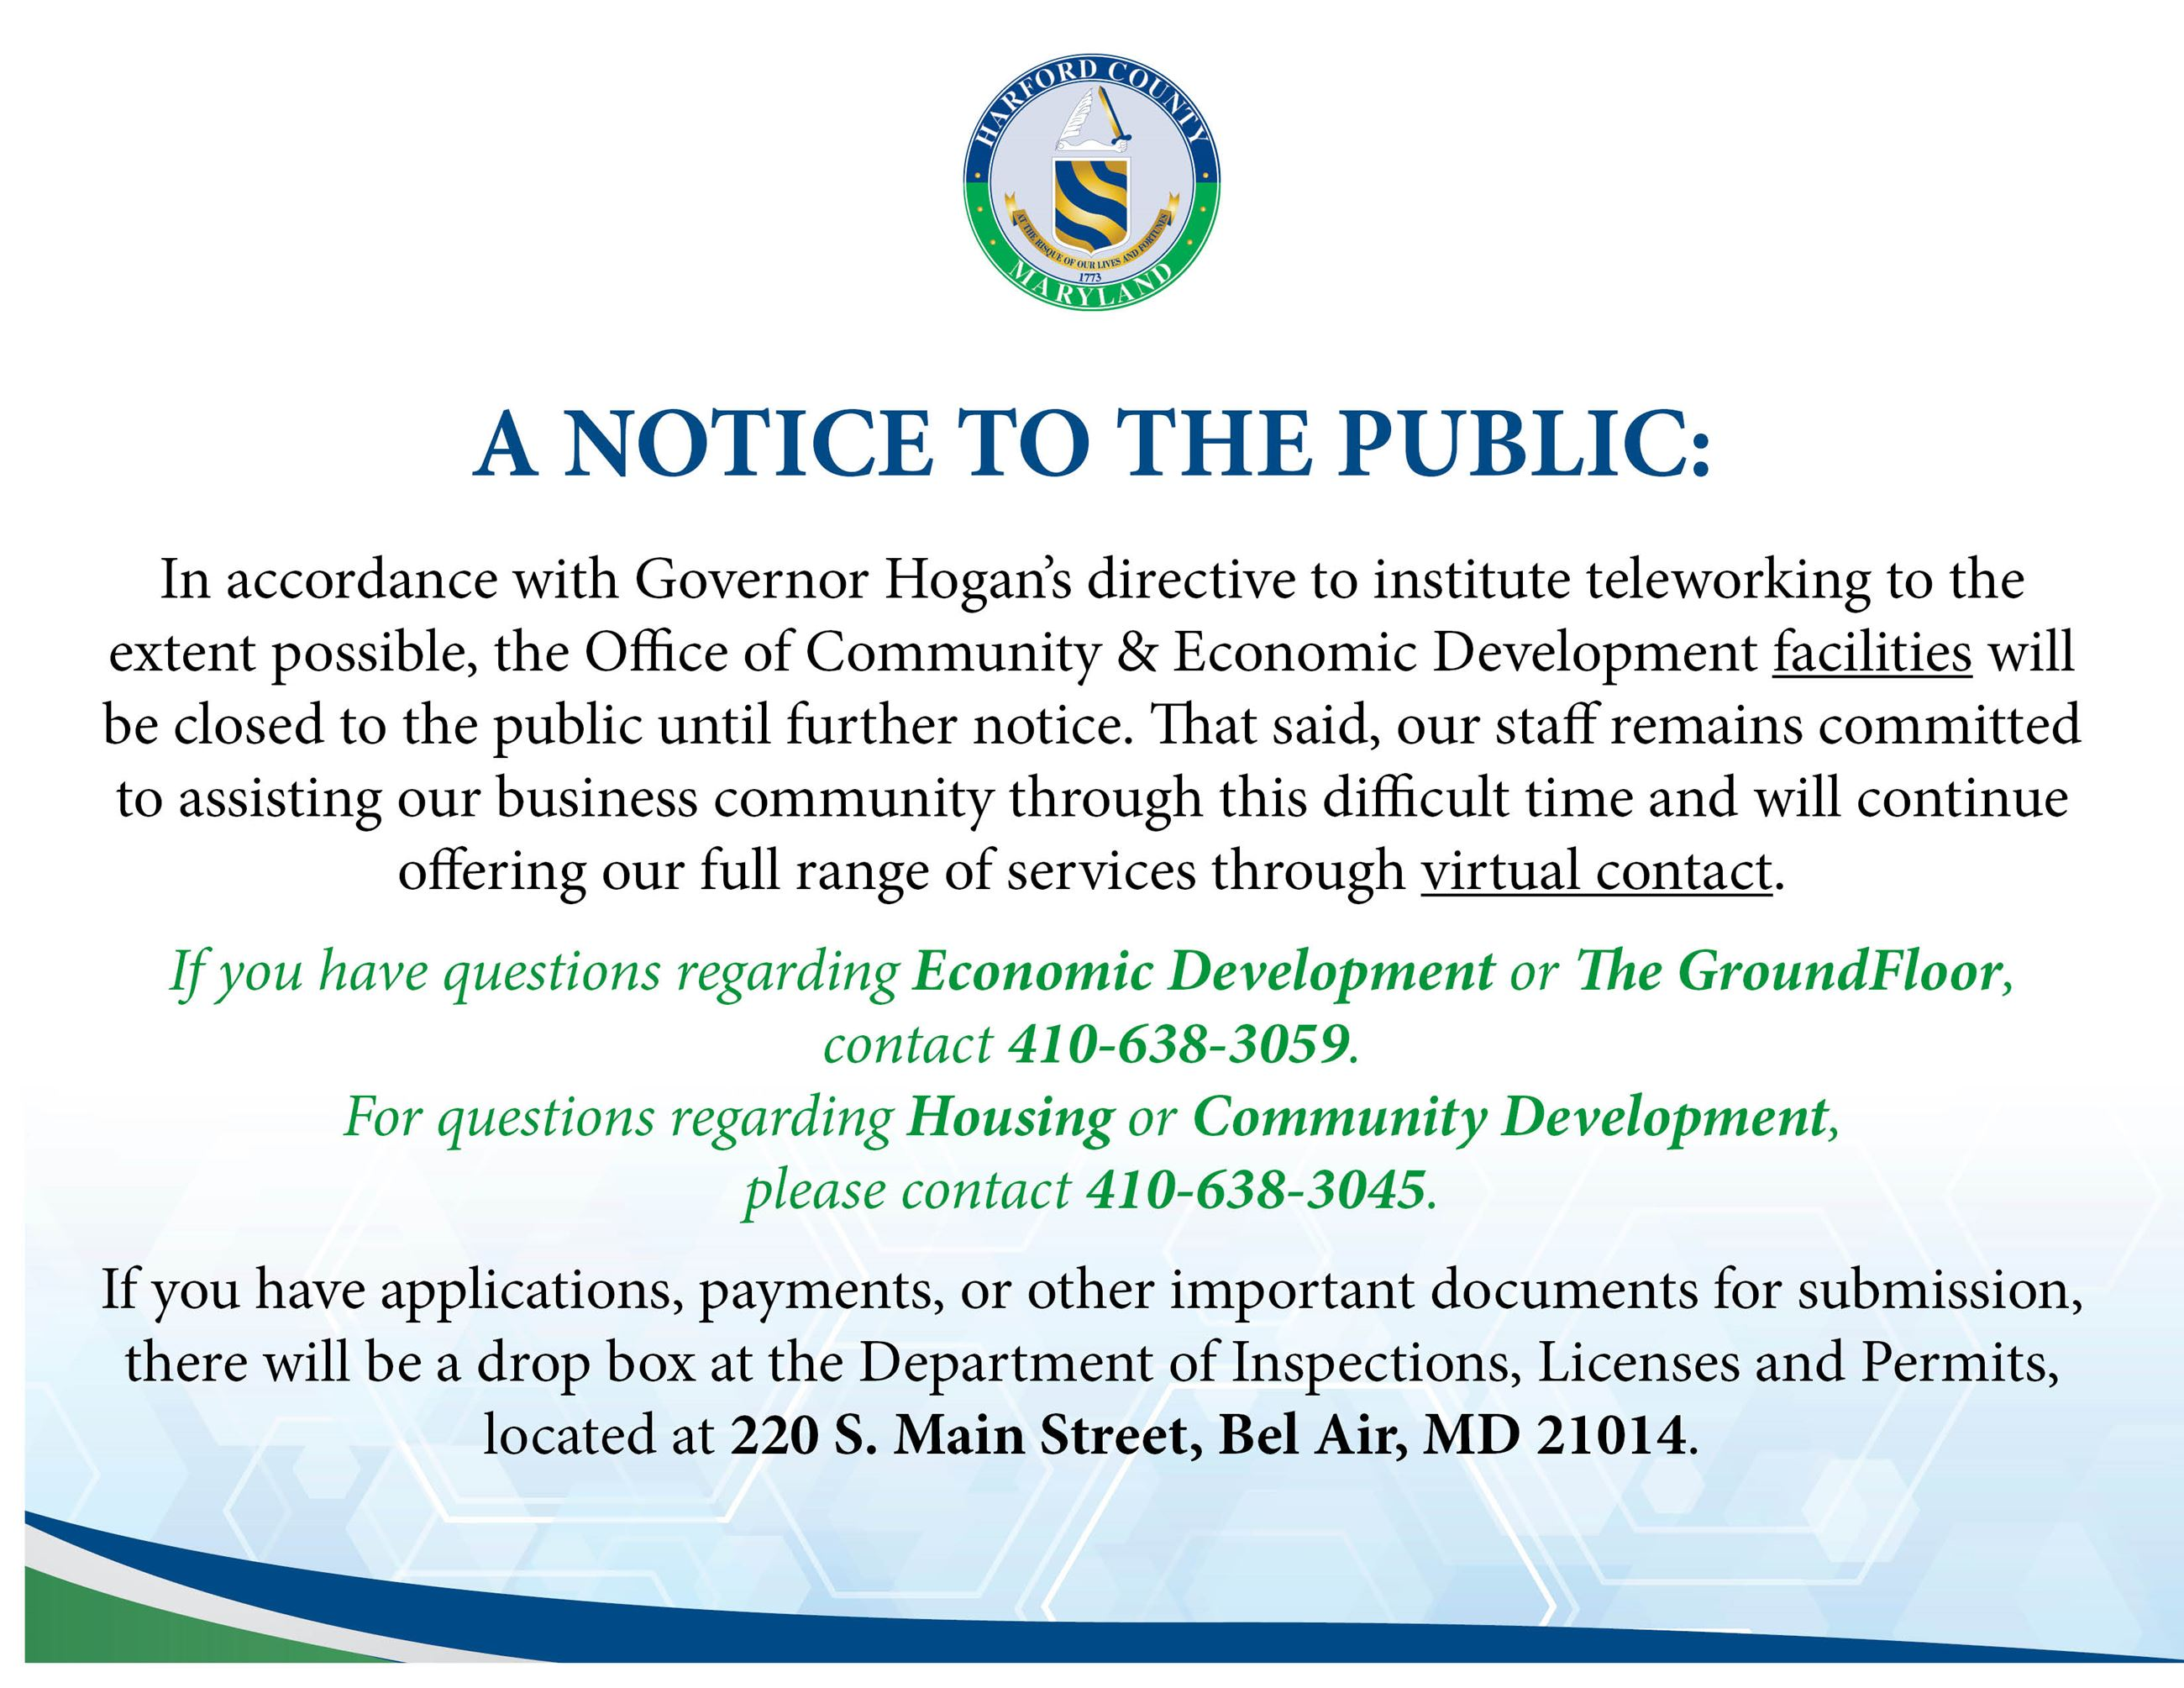 Notice for OCED_Economic Development